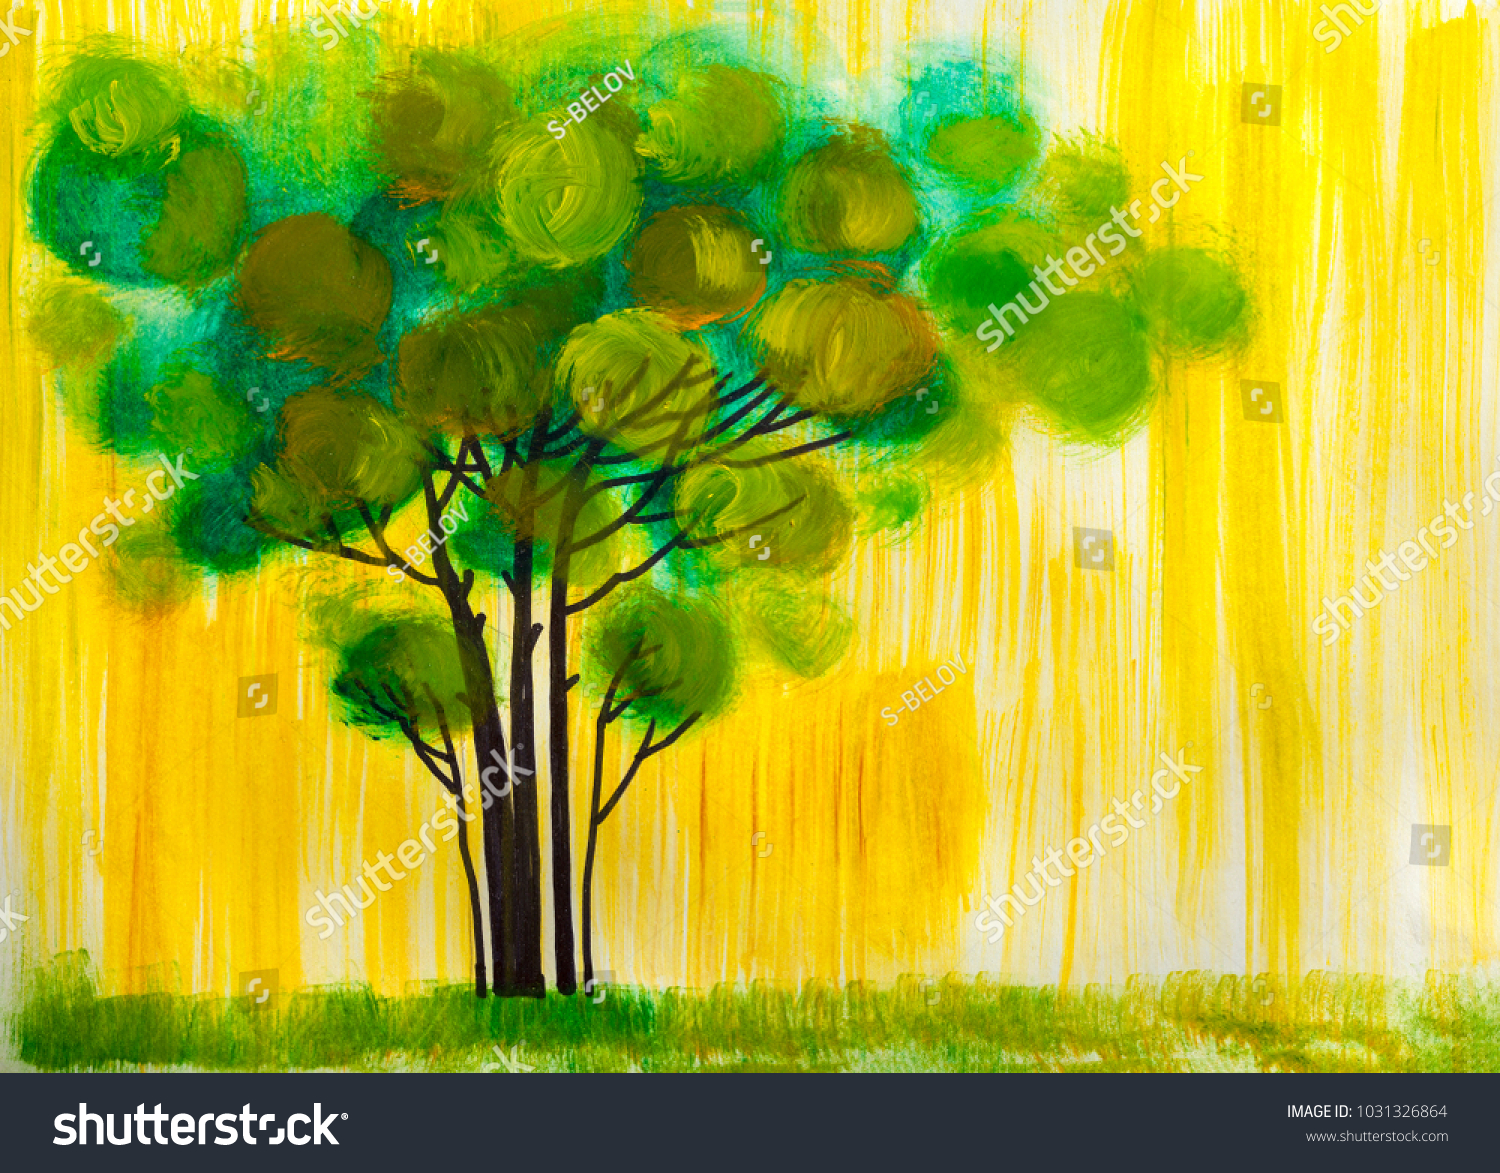 Oil Painting Landscape Colorful Tree Hand Stock Illustration ...